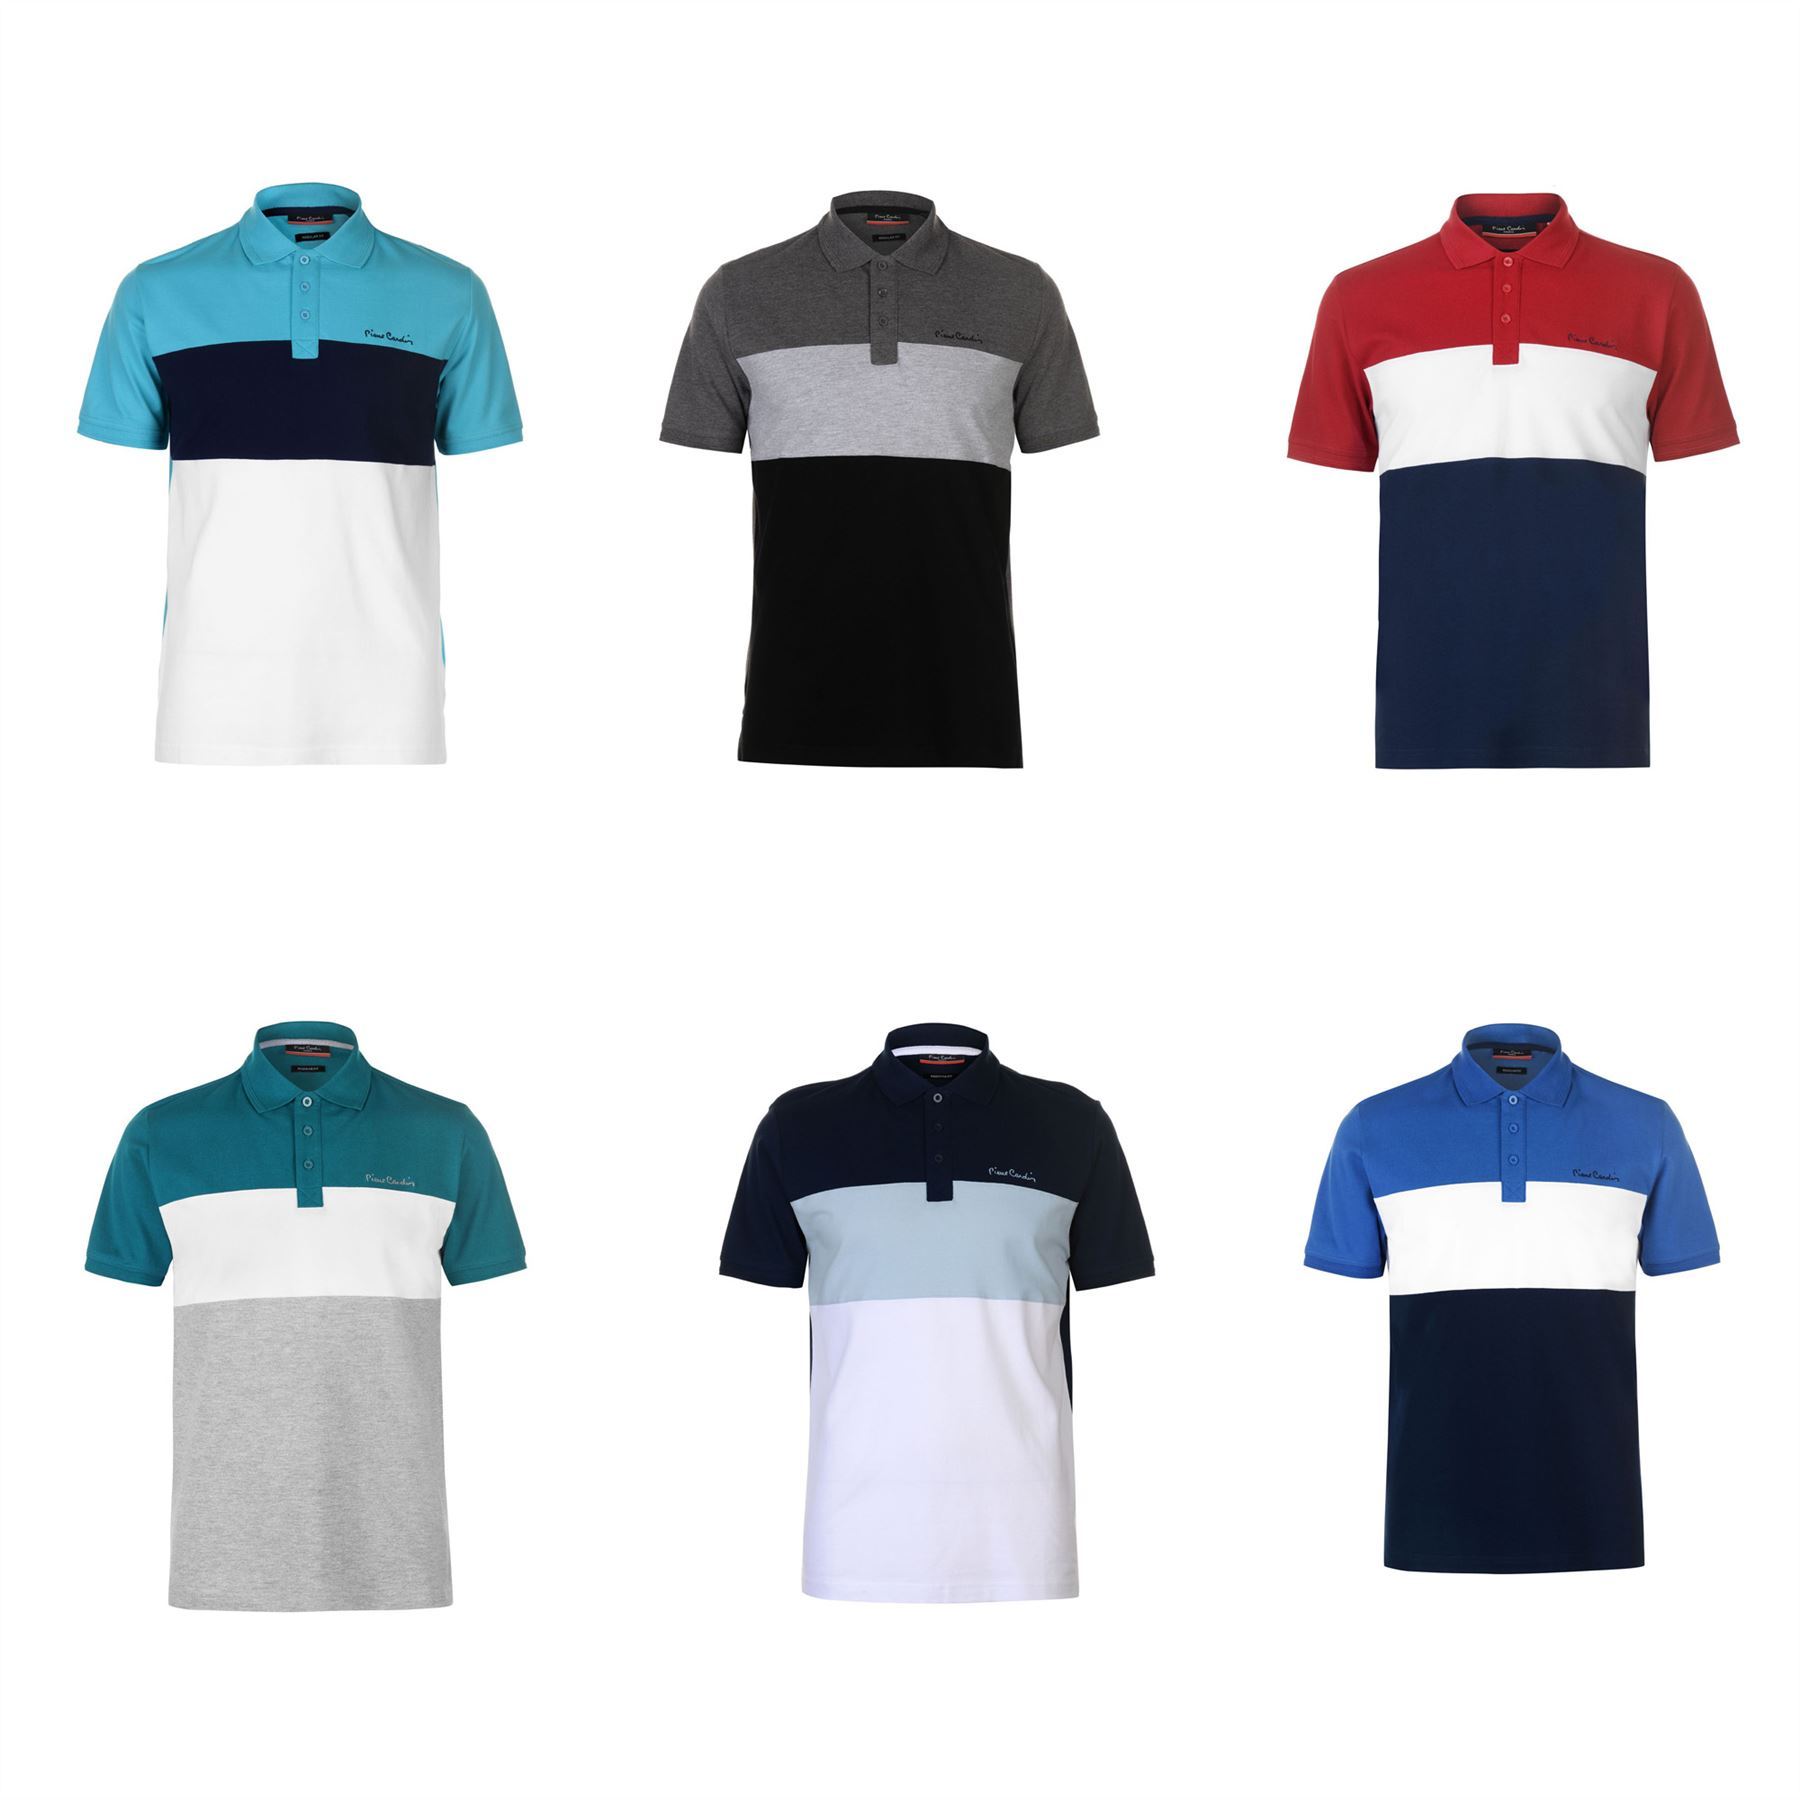 Details about Pierre Cardin Panel Polo Shirt Mens Top Tee Casual T Shirt